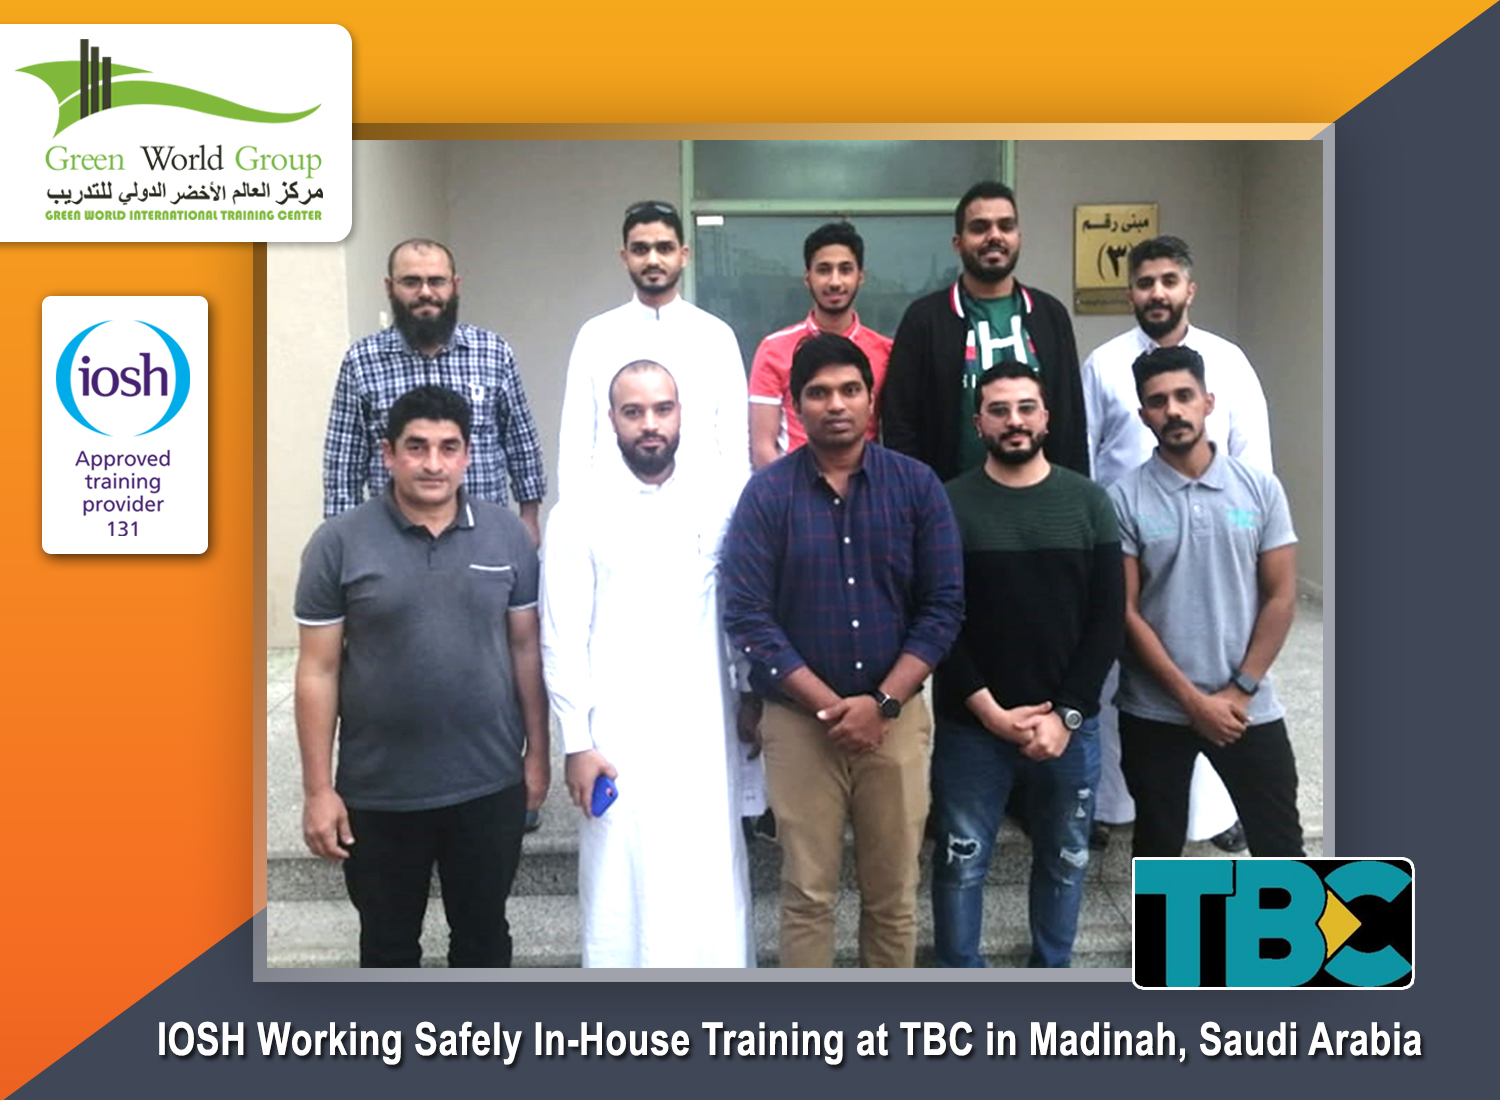 IOSH In-House Training Course at TBC in Madinah,Saudi Arabia